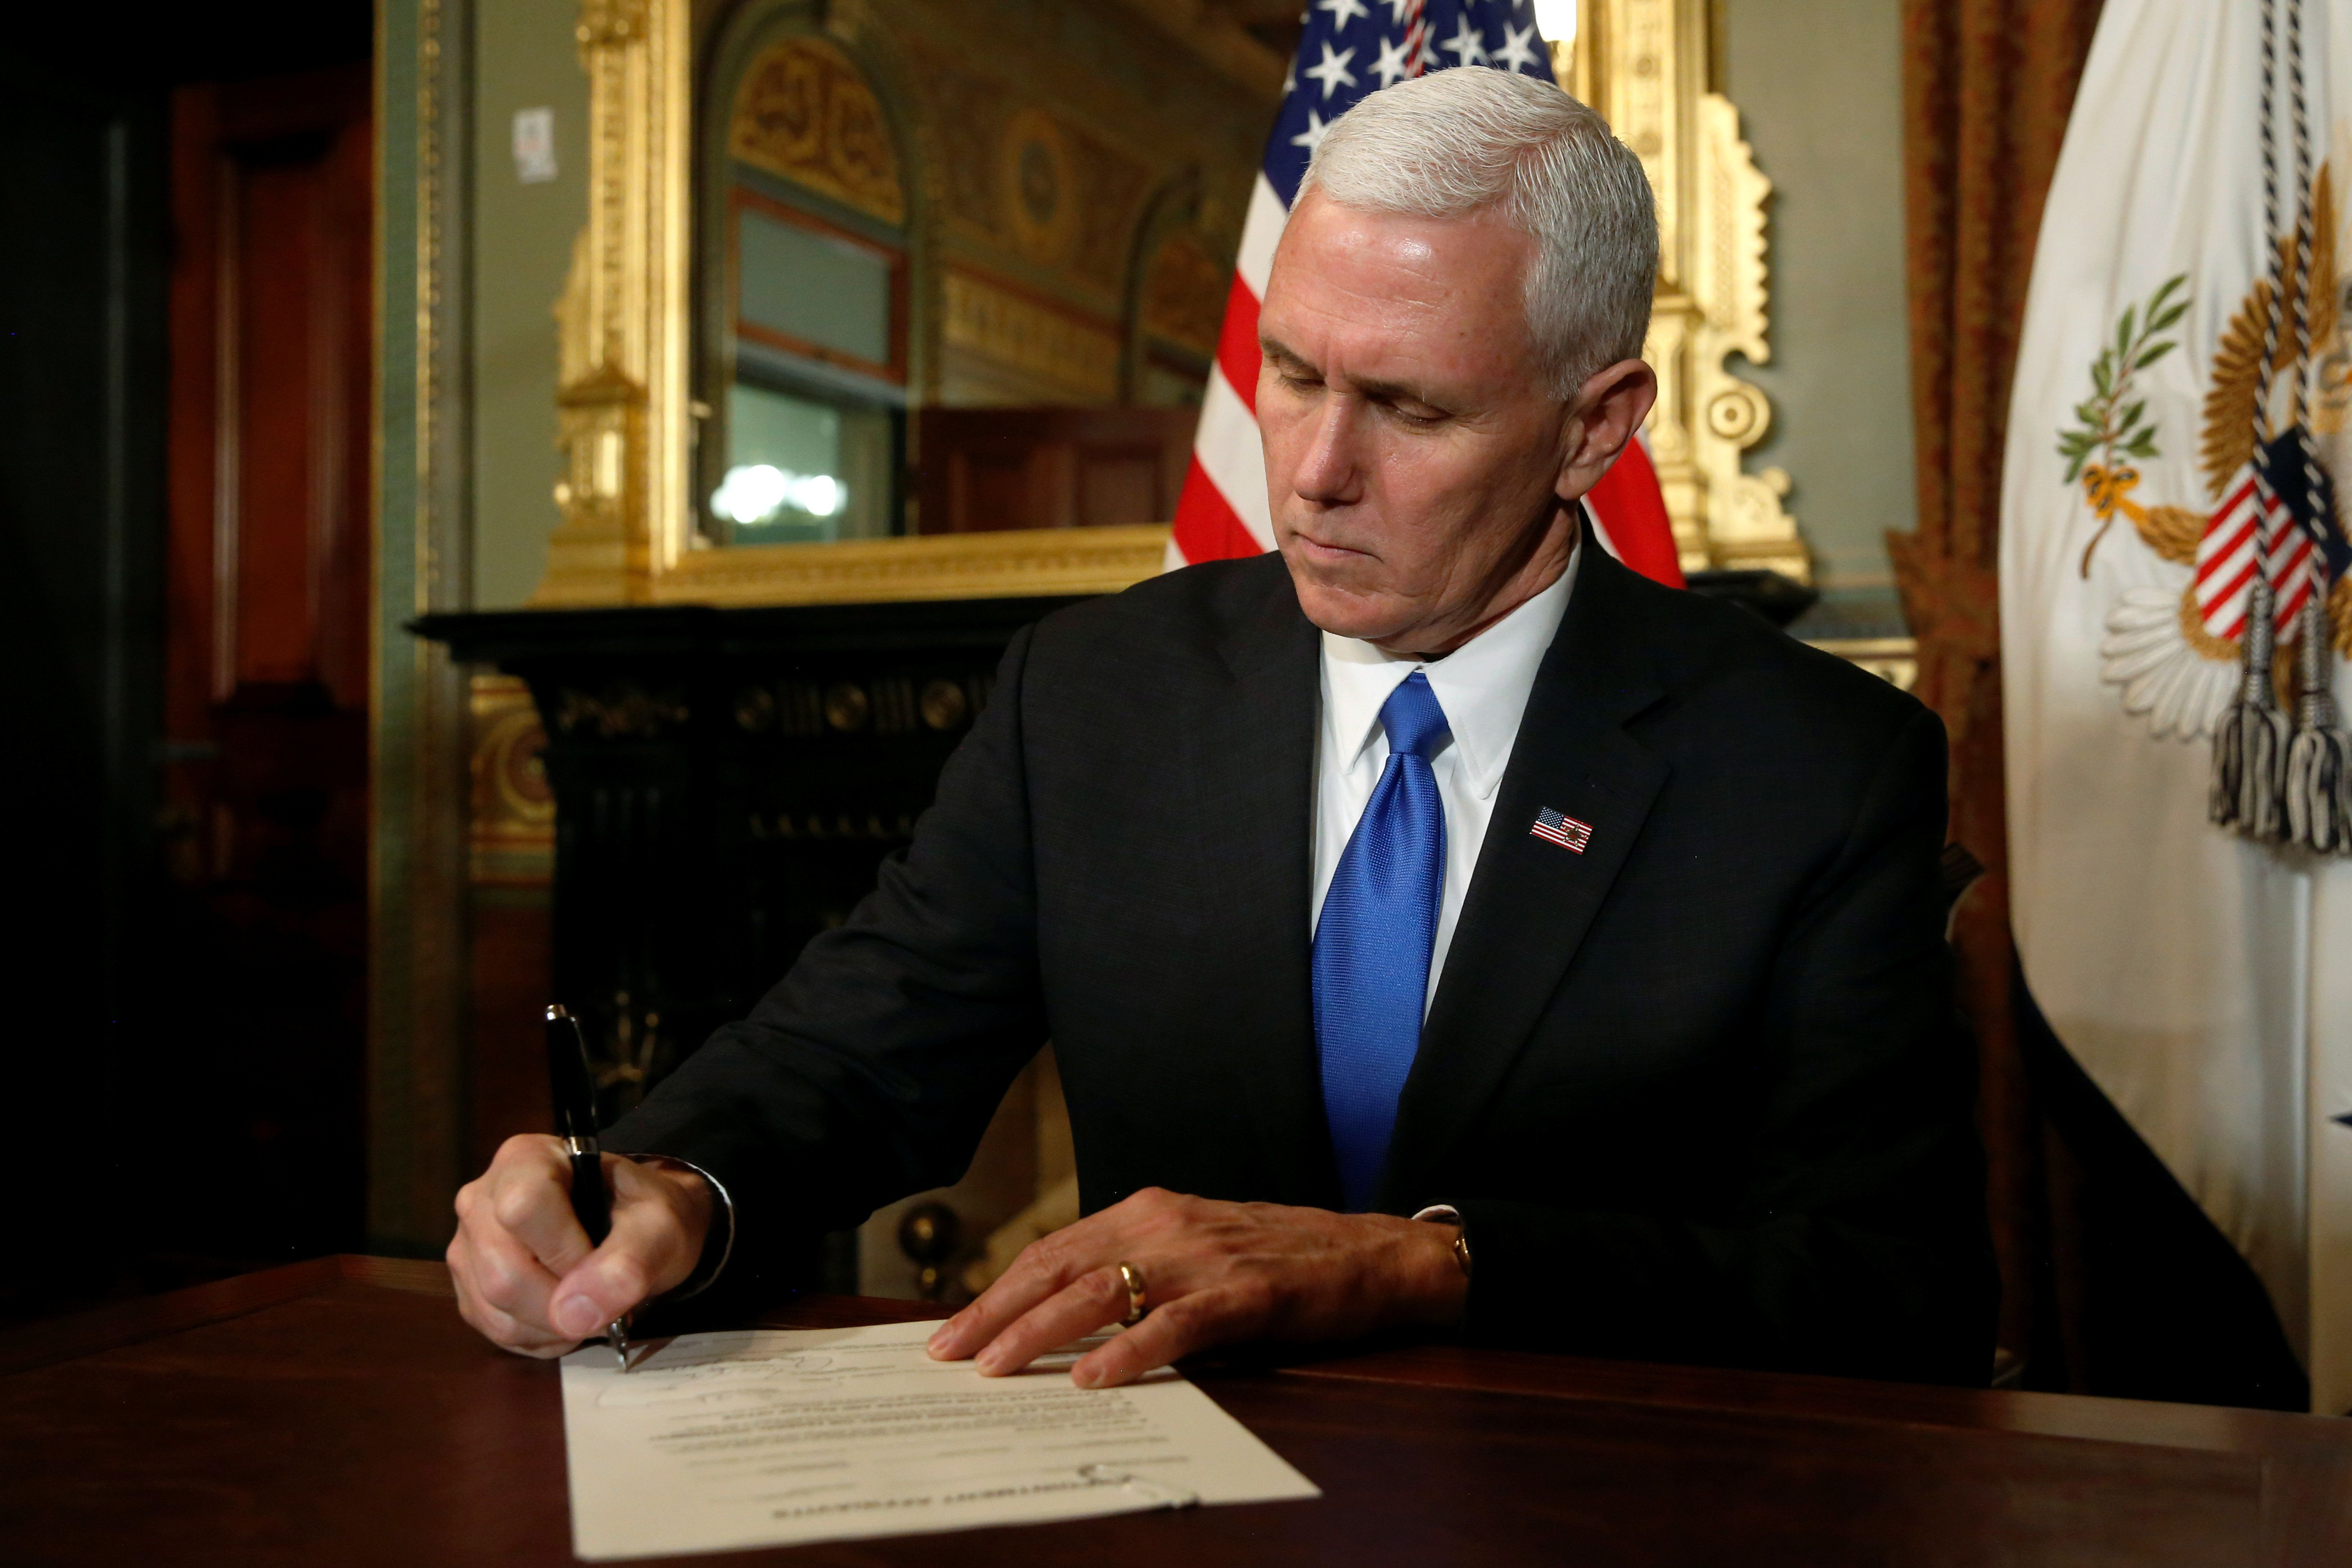 U.S. Vice President Mike Pence signs the document confirming retired U.S. Marine Corps General John Kelly to be Secretary of Homeland Security in his ceremonial office in the Eisenhower Executive Office Building at the White House in Washington, U.S. January 20, 2017. REUTERS/Jonathan Ernst